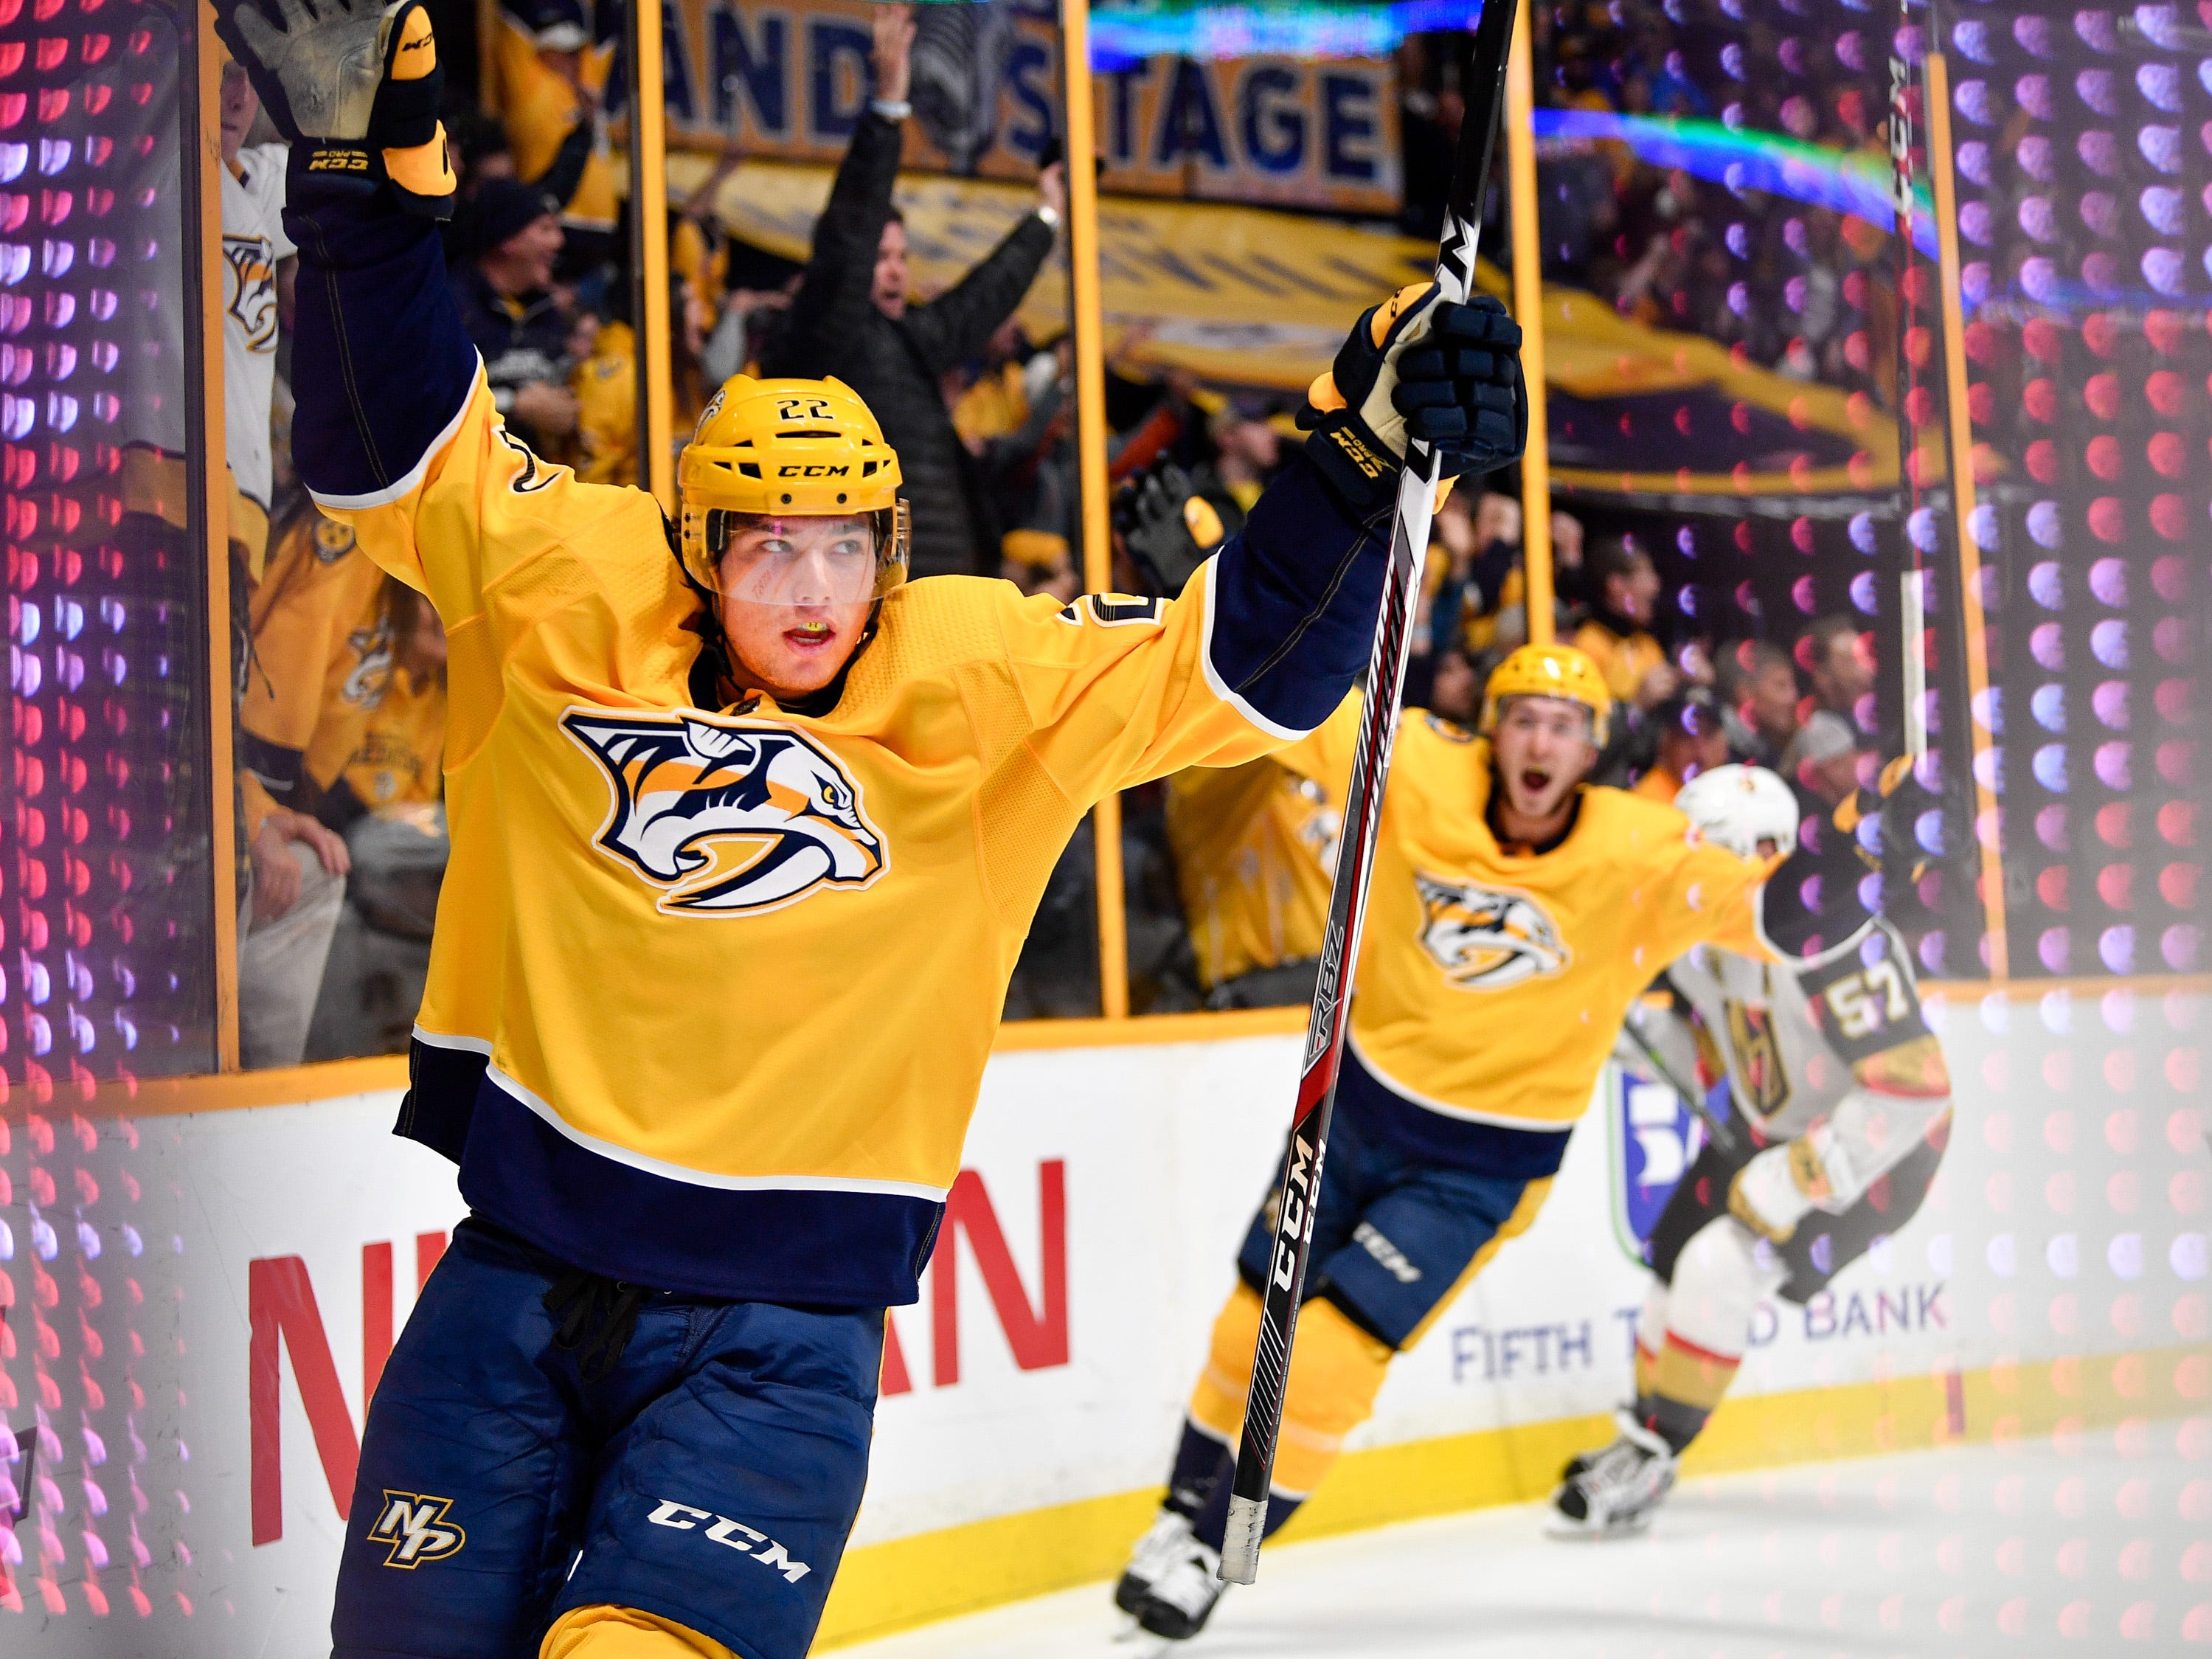 #22, Kevin Fiala, Forward - Nashville Predators left wing Kevin Fiala (22) reacts to his goal against the Vegas Golden Knights during the third period at Bridgestone Arena in Nashville, Tenn., Tuesday, Jan. 16, 2018.